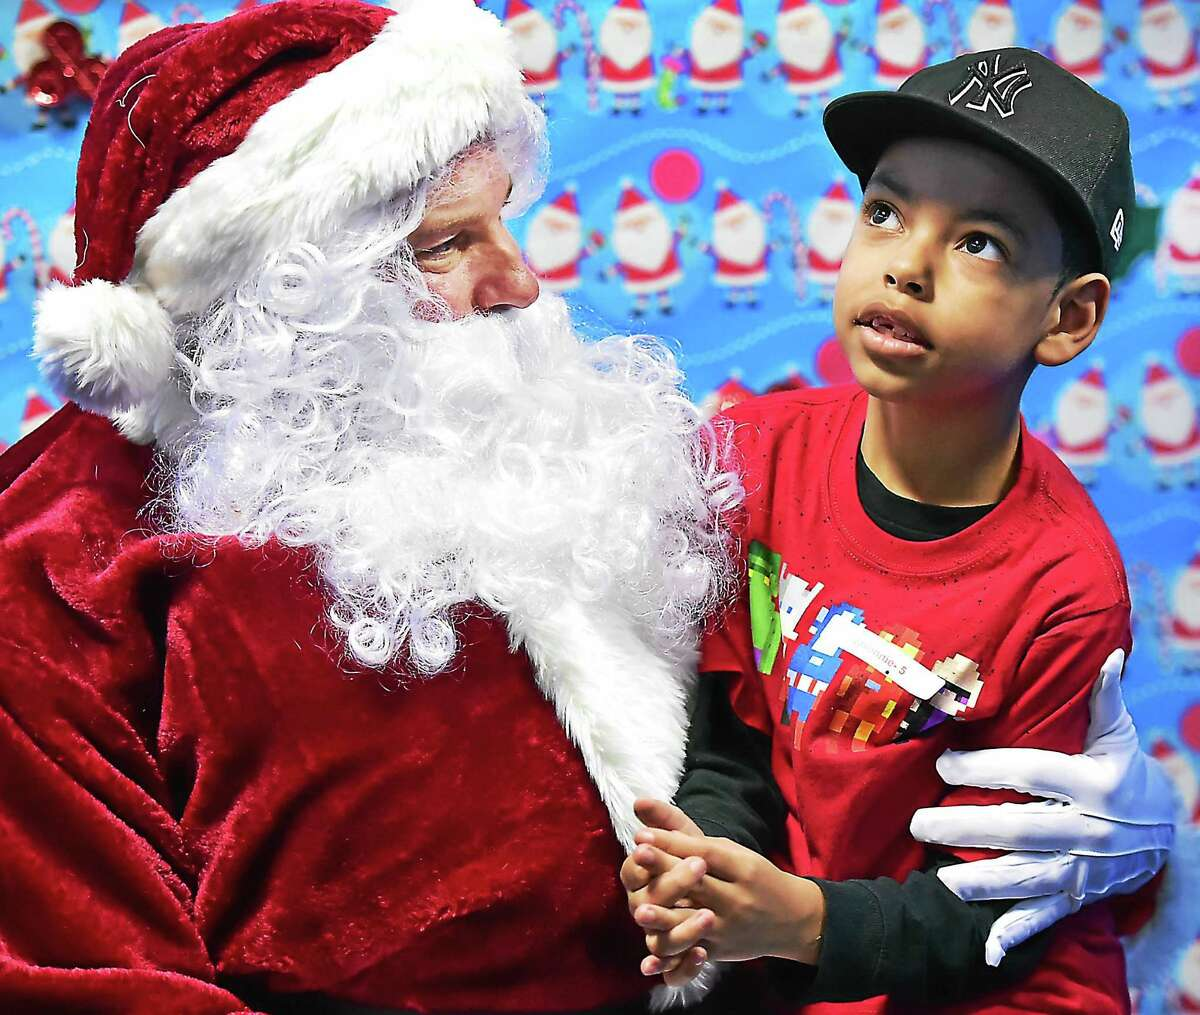 """(Catherine Avalone - New Haven Register) Javonnie Rodriguez, 7, of West Haven sits on the lap of a """"sensitive"""" Santa who meets with children on the autisim spectrum one on one in a low-stimuli setting at a holiday party, Saturday, December 19, 2015, at ASD Fitness at 307 Racebrook Road in Orange."""